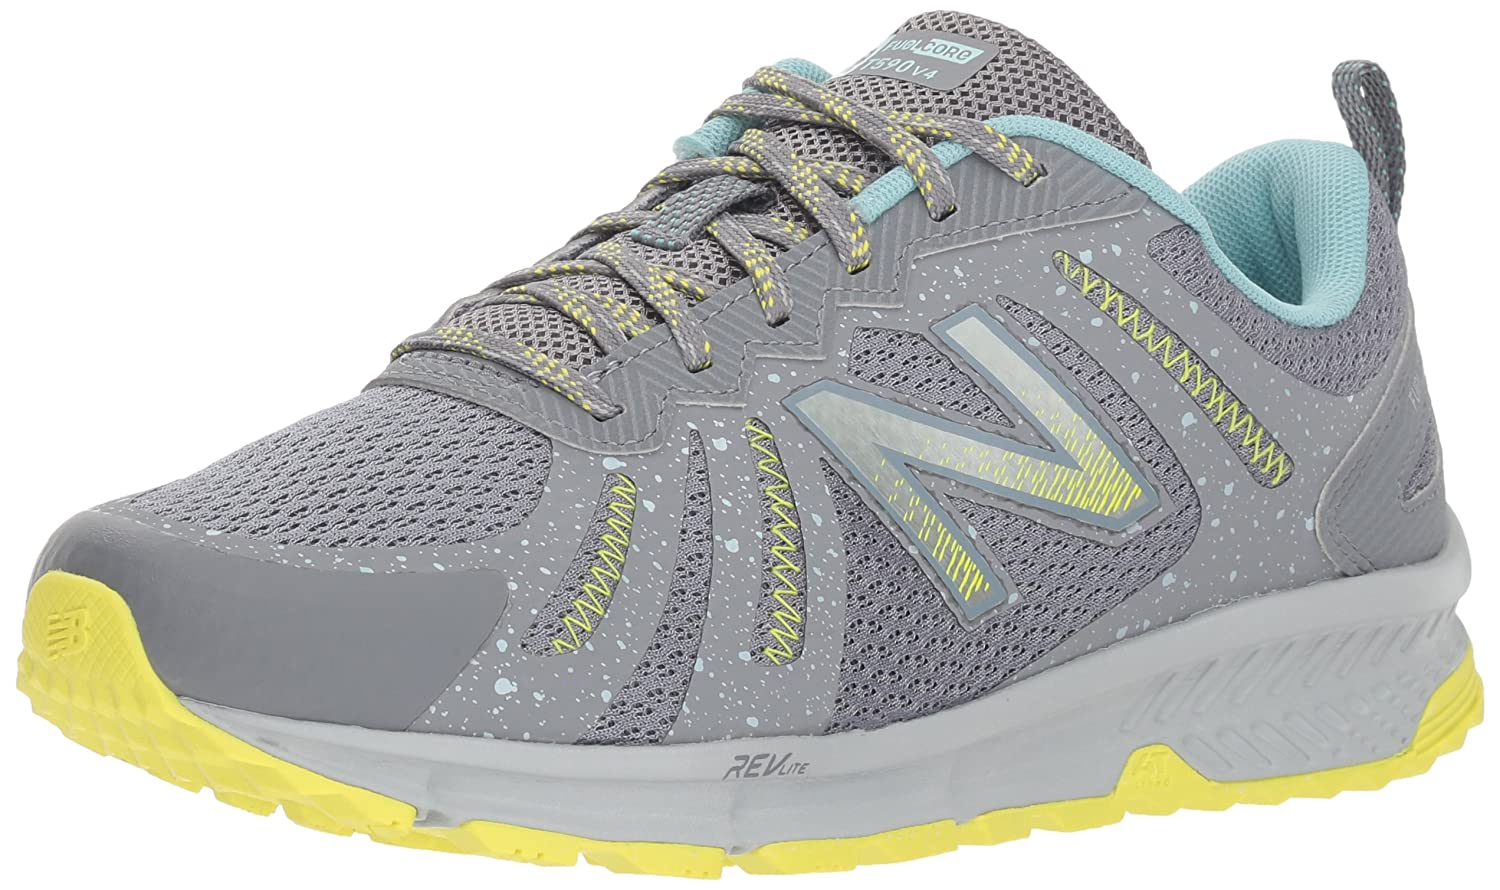 New Balance Women's 590v4 FuelCore Trail Running Shoe B075R7JN96 7.5 B(M) US|Gunmetal